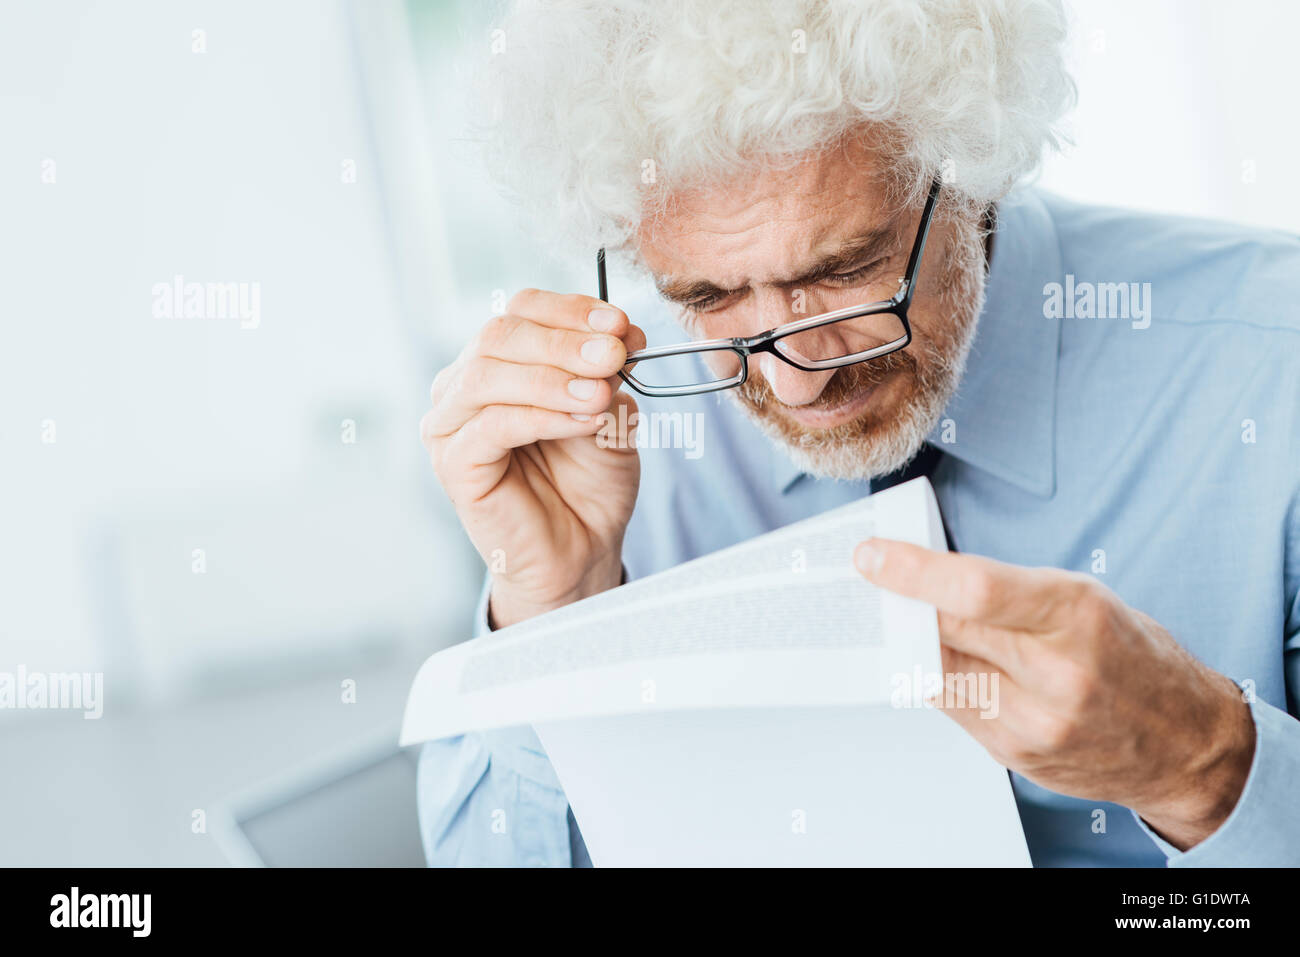 Mature male office worker having eyesight problems while reading paperwork with small text - Stock Image